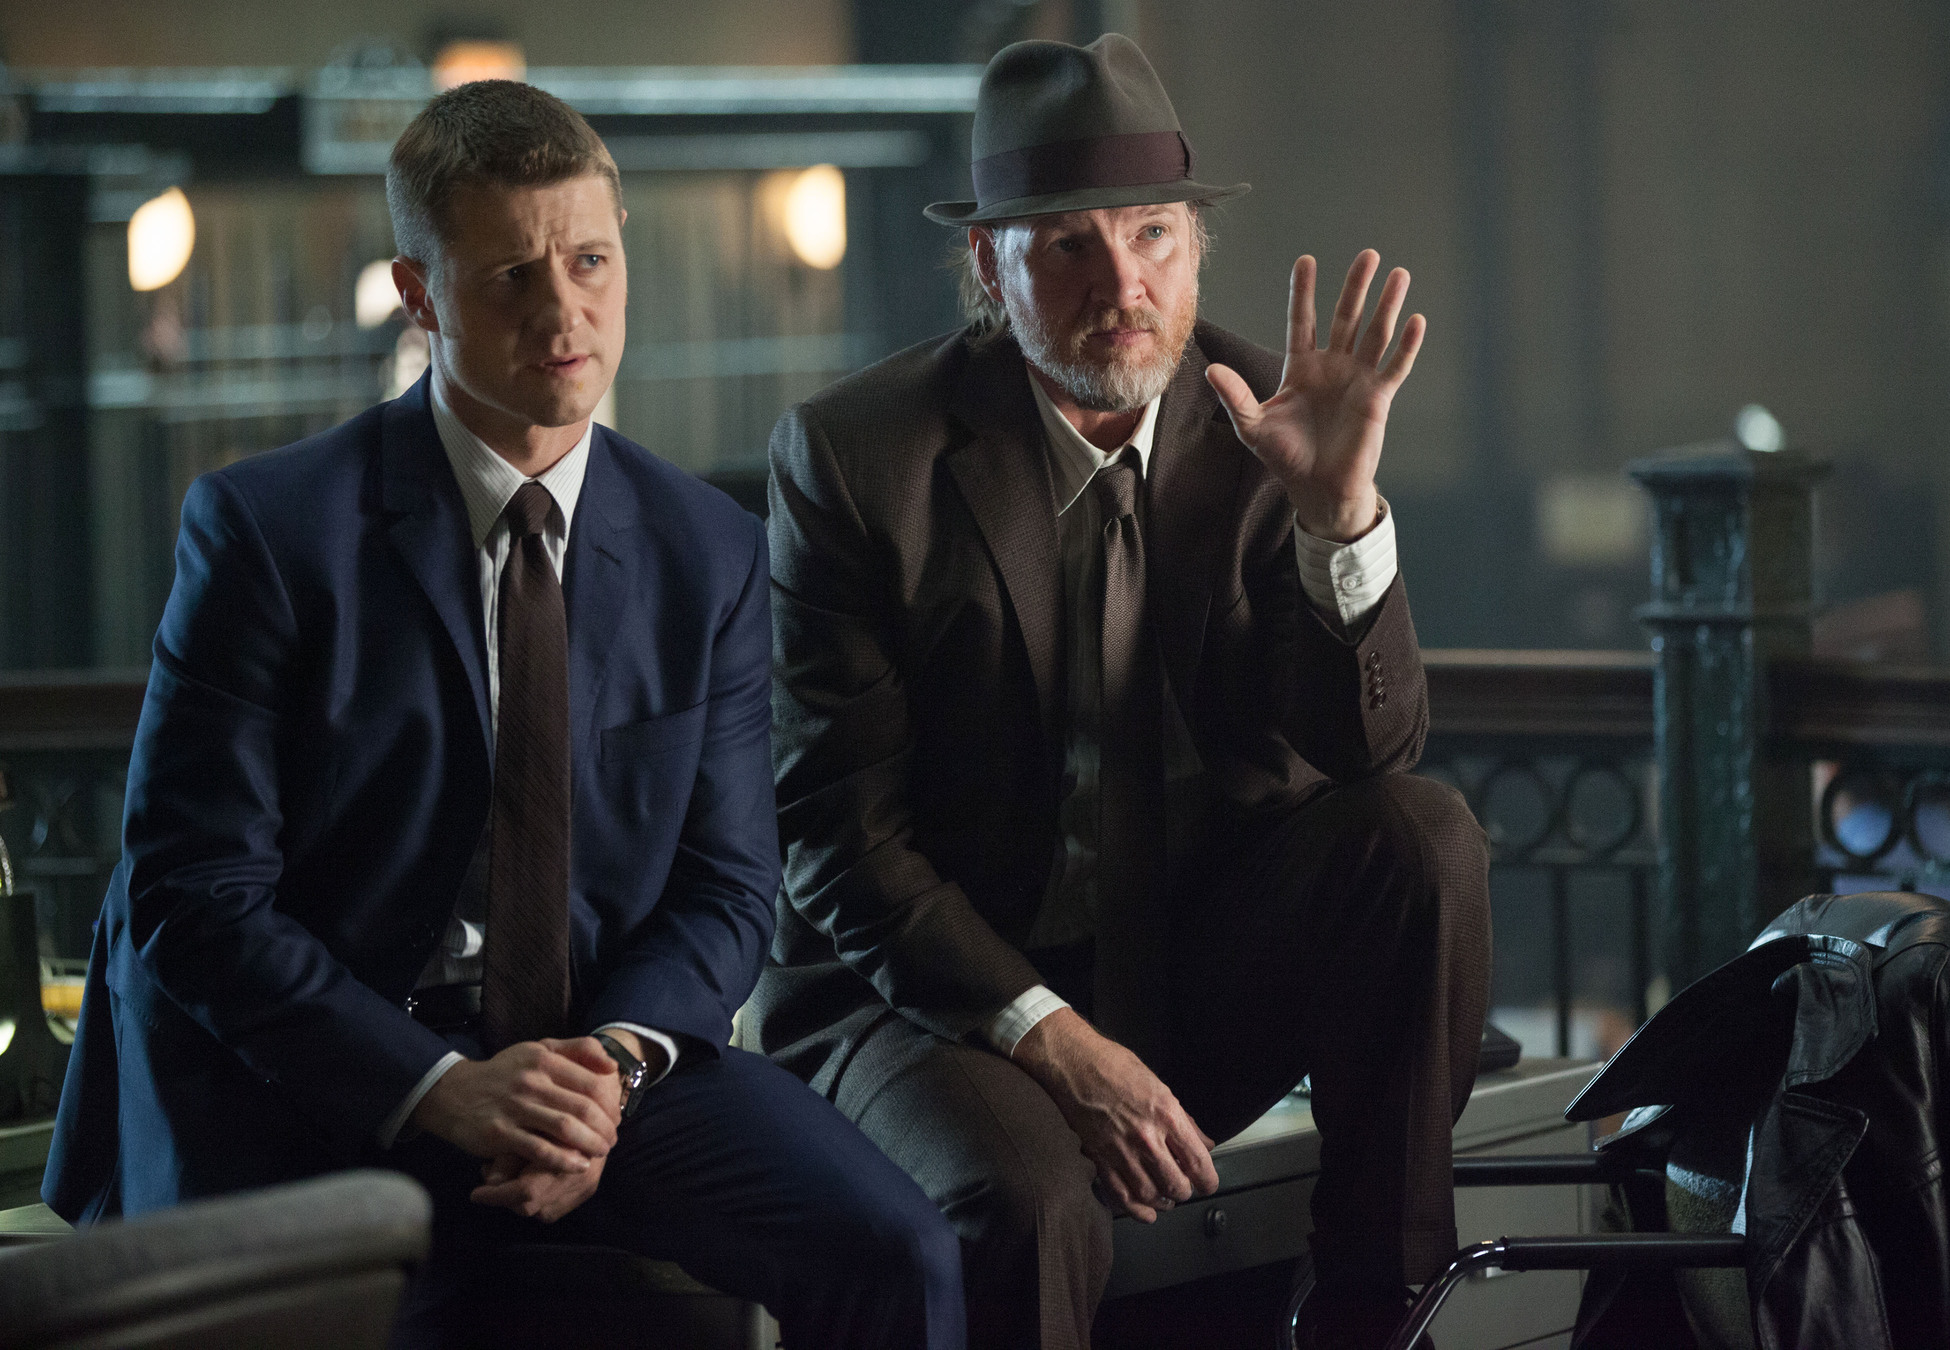 """GOTHAM: Detecitves James Gordon (Ben McKenzie, L) and Harvey Bullock (Donal Logue, R) learn information about a case in the """"Harvey Dent"""" episode of GOTHAM airing Monday, Nov. 17 (8:00-9:00 PM ET/PT) on FOX. ©2014 Fox Broadcasting Co. Cr: Jessica Miglio/FOX"""